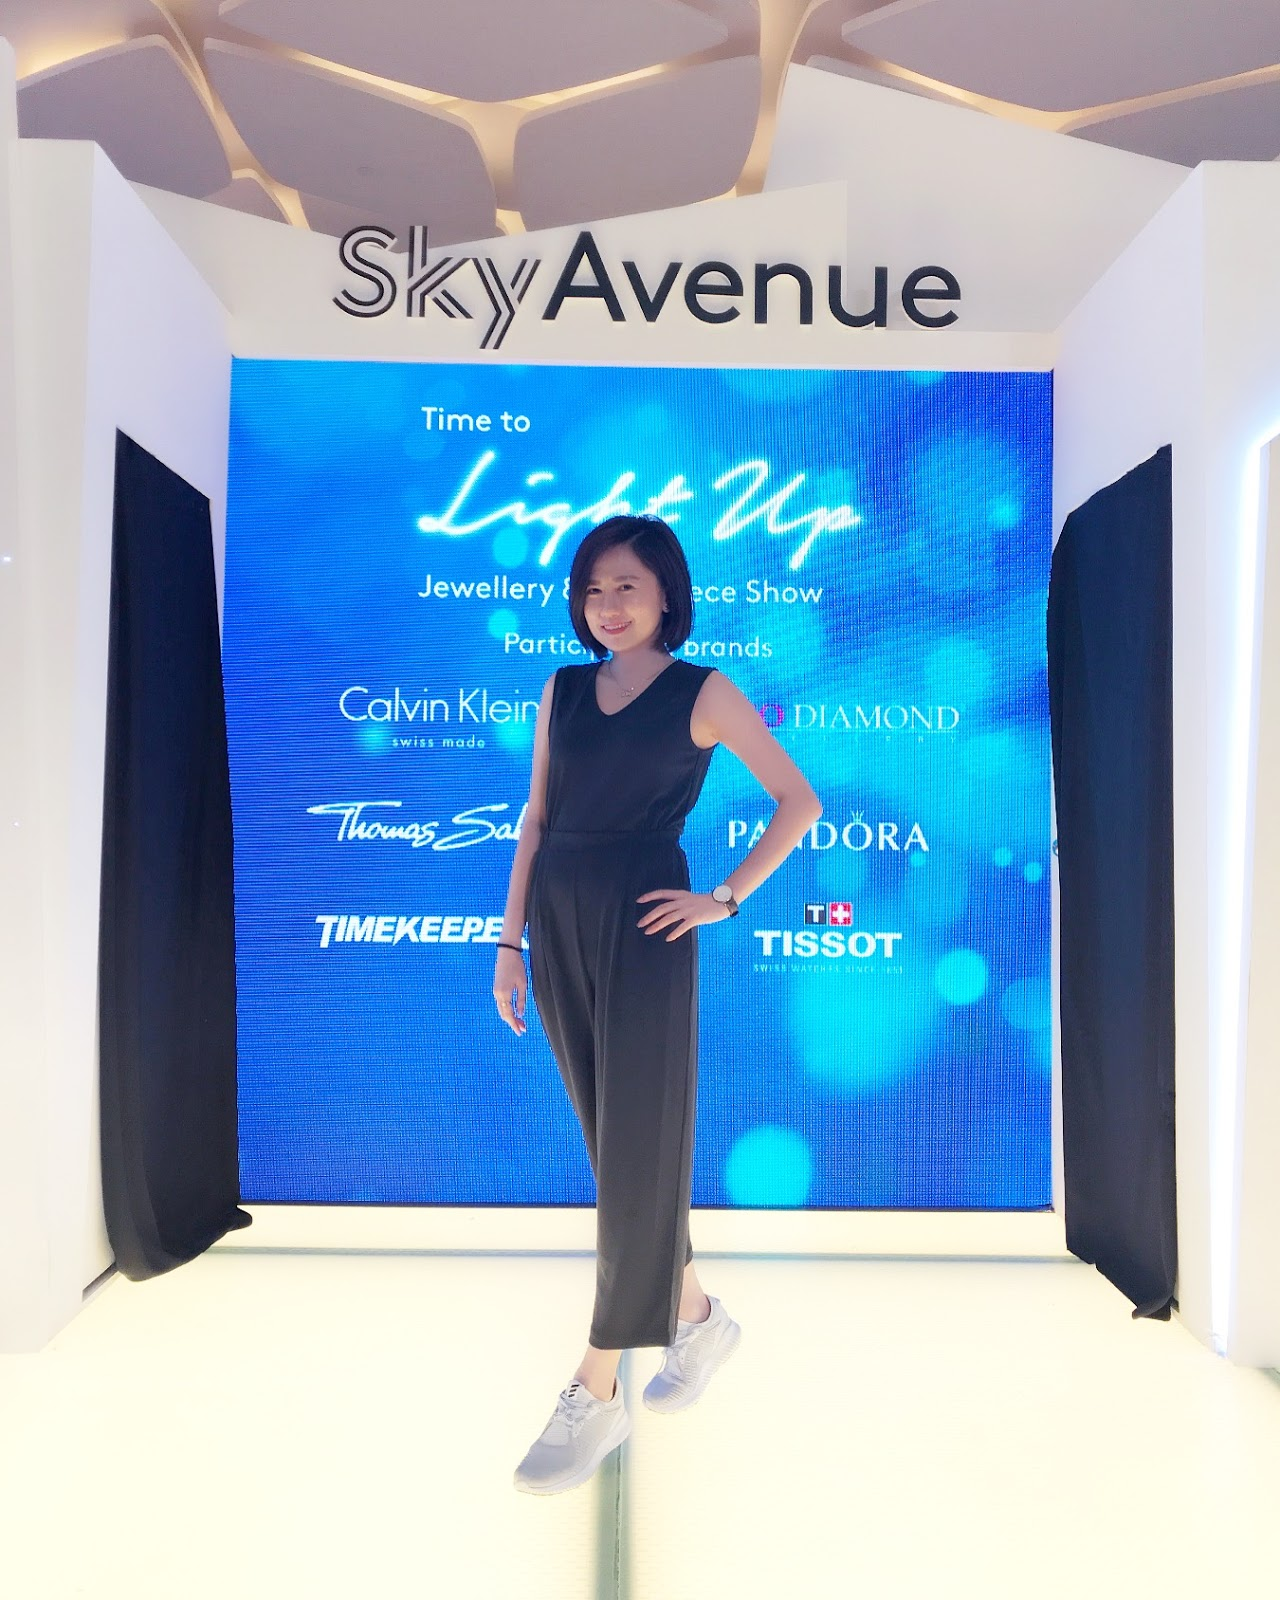 [Event] Time To Light Up - Glitz and Glamour Timepiece Fashion Show in Sky Avenue @ Resorts World Genting